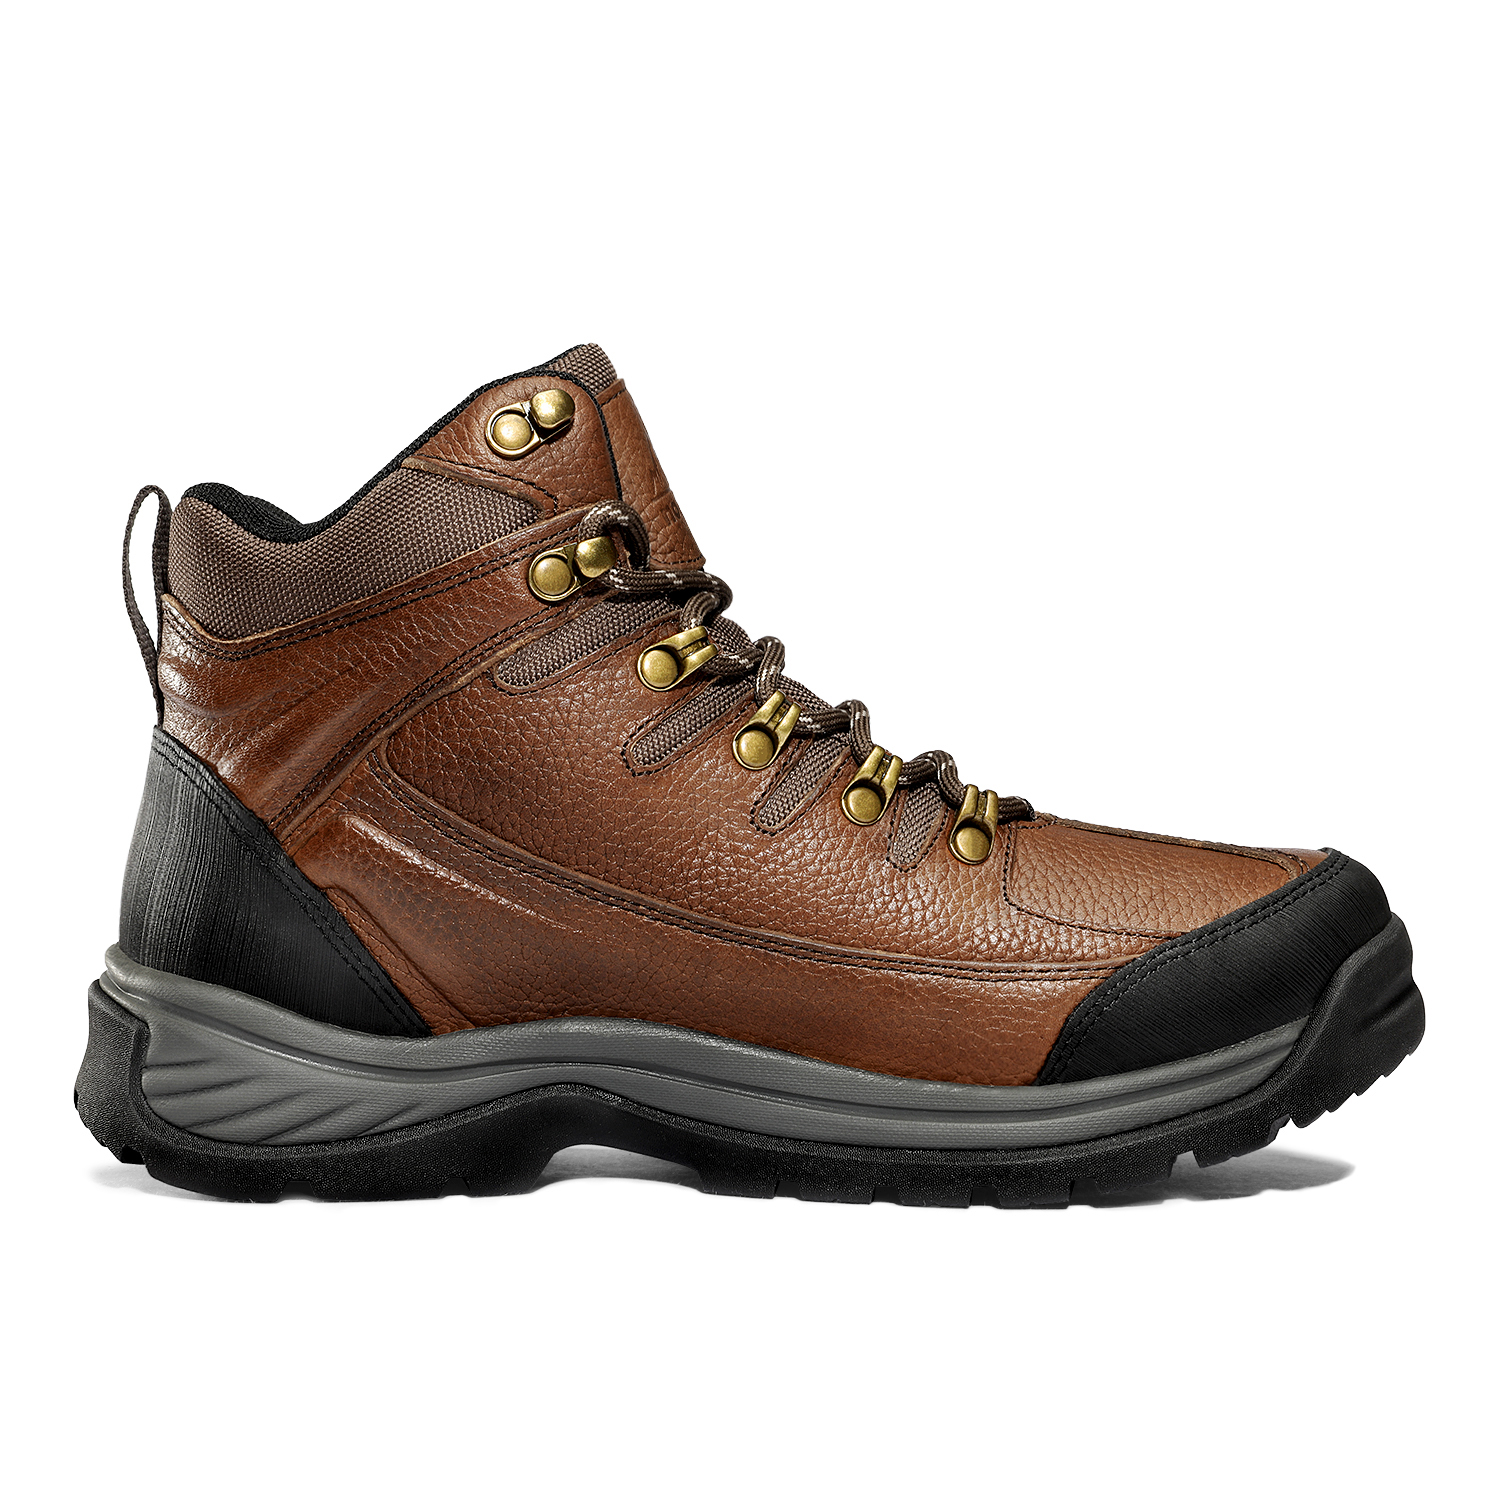 NORTIV-8-Men-039-s-Safety-Shoes-Steel-Toe-Work-Boots-Indestructible-Waterproof-Boots thumbnail 9